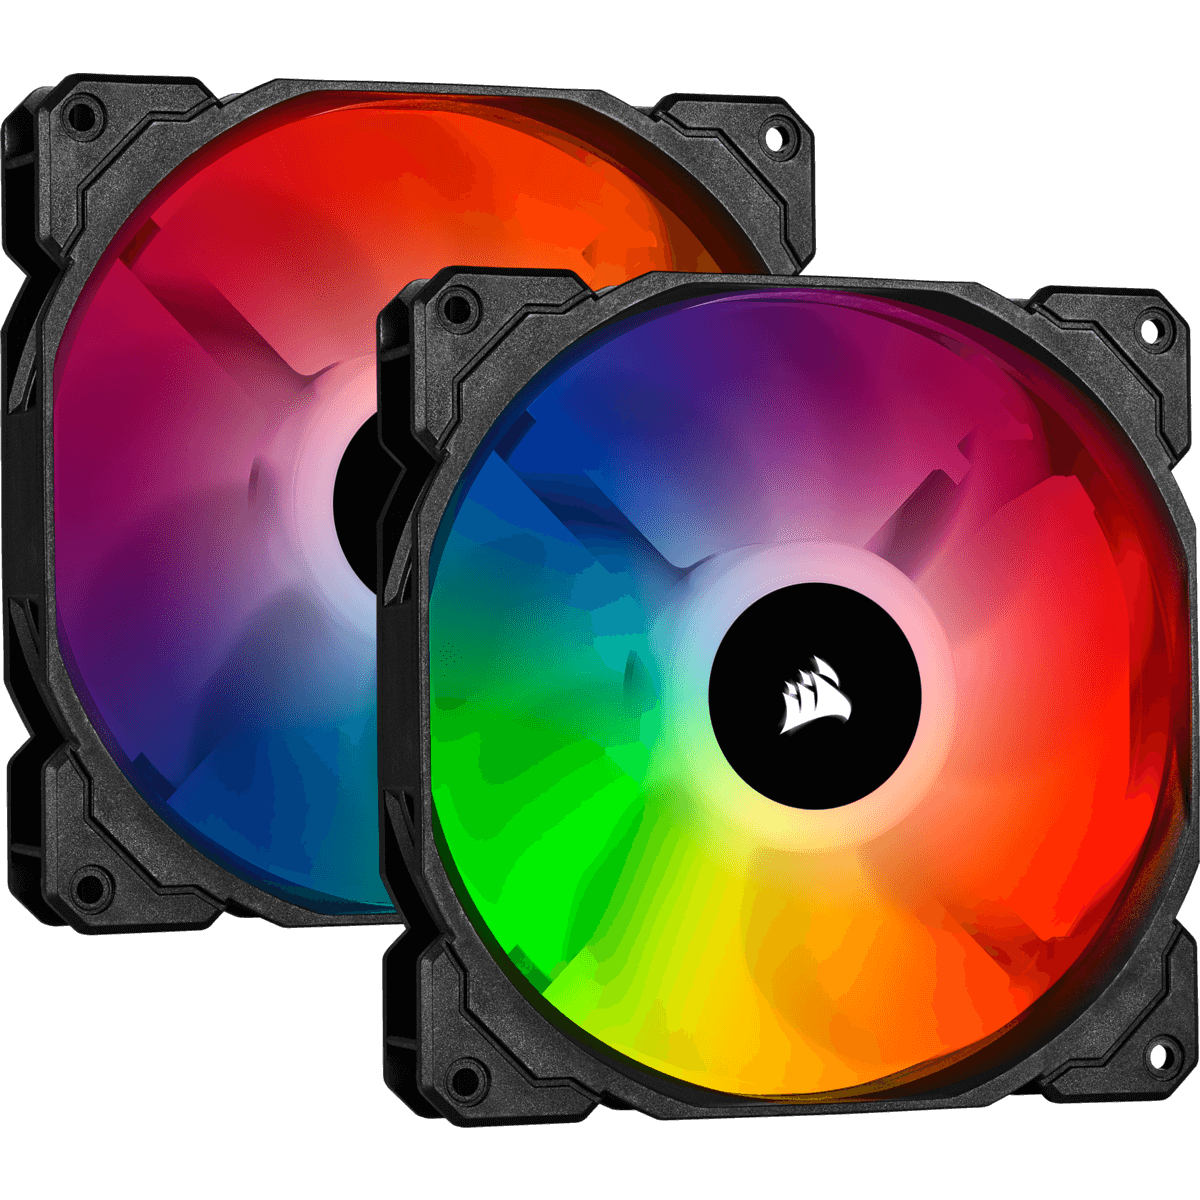 Kit Fan com 2 Unidades Corsair iCue SP140, RGB Pro, 140mm, CO-9050096-WW